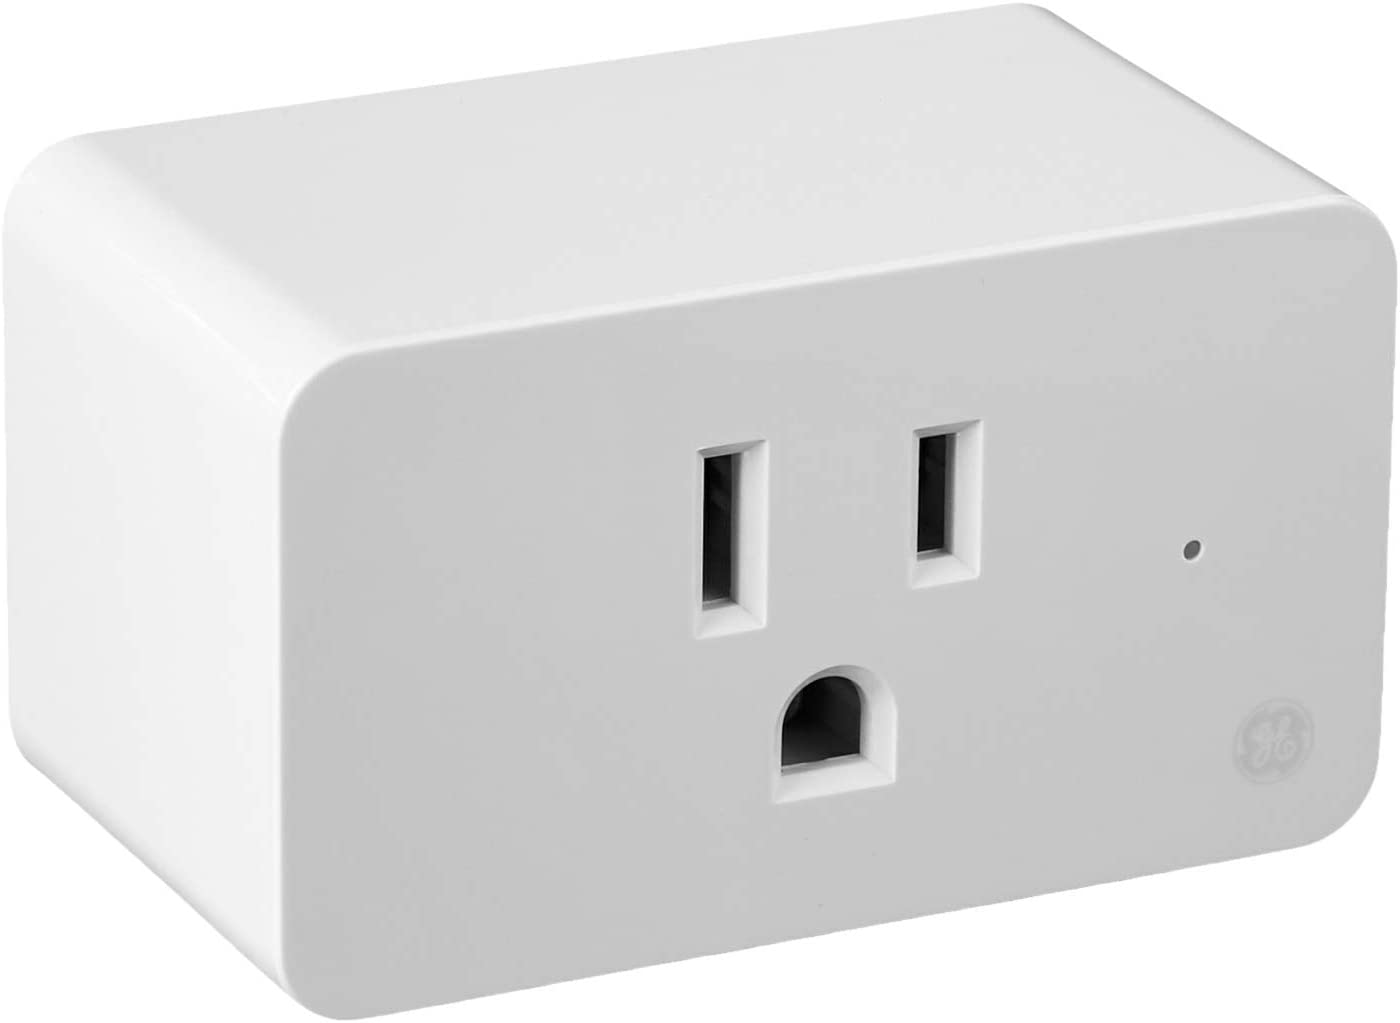 GE Lighting 93103491 C by GE On/Off Smart Plug, White, Works with Alexa and Google Assistant, WiFi Enabled, No Hub Required